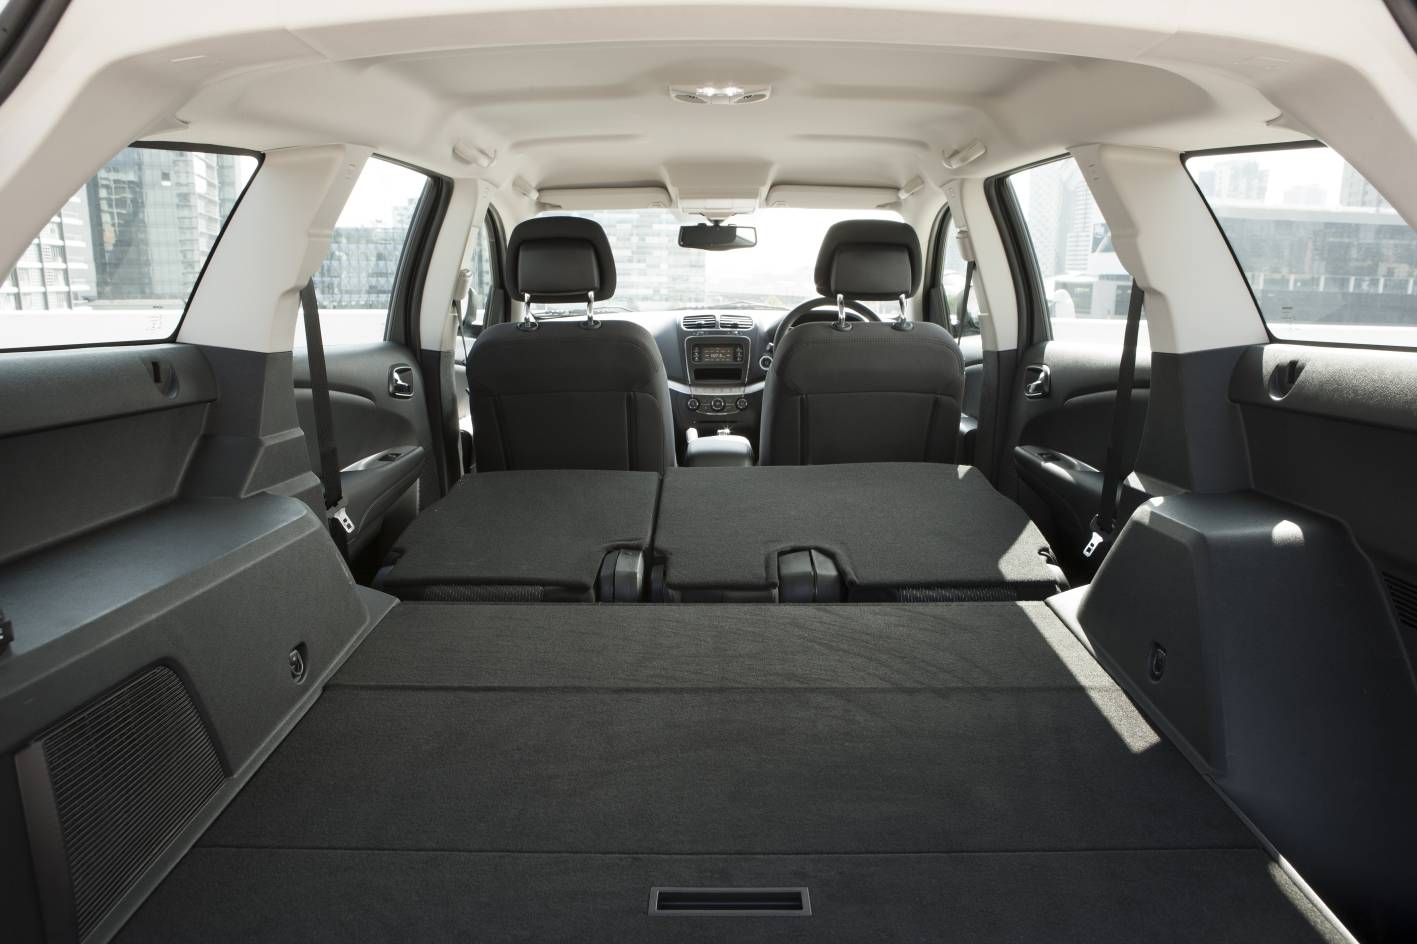 Fiat freemont lounge 7 seater